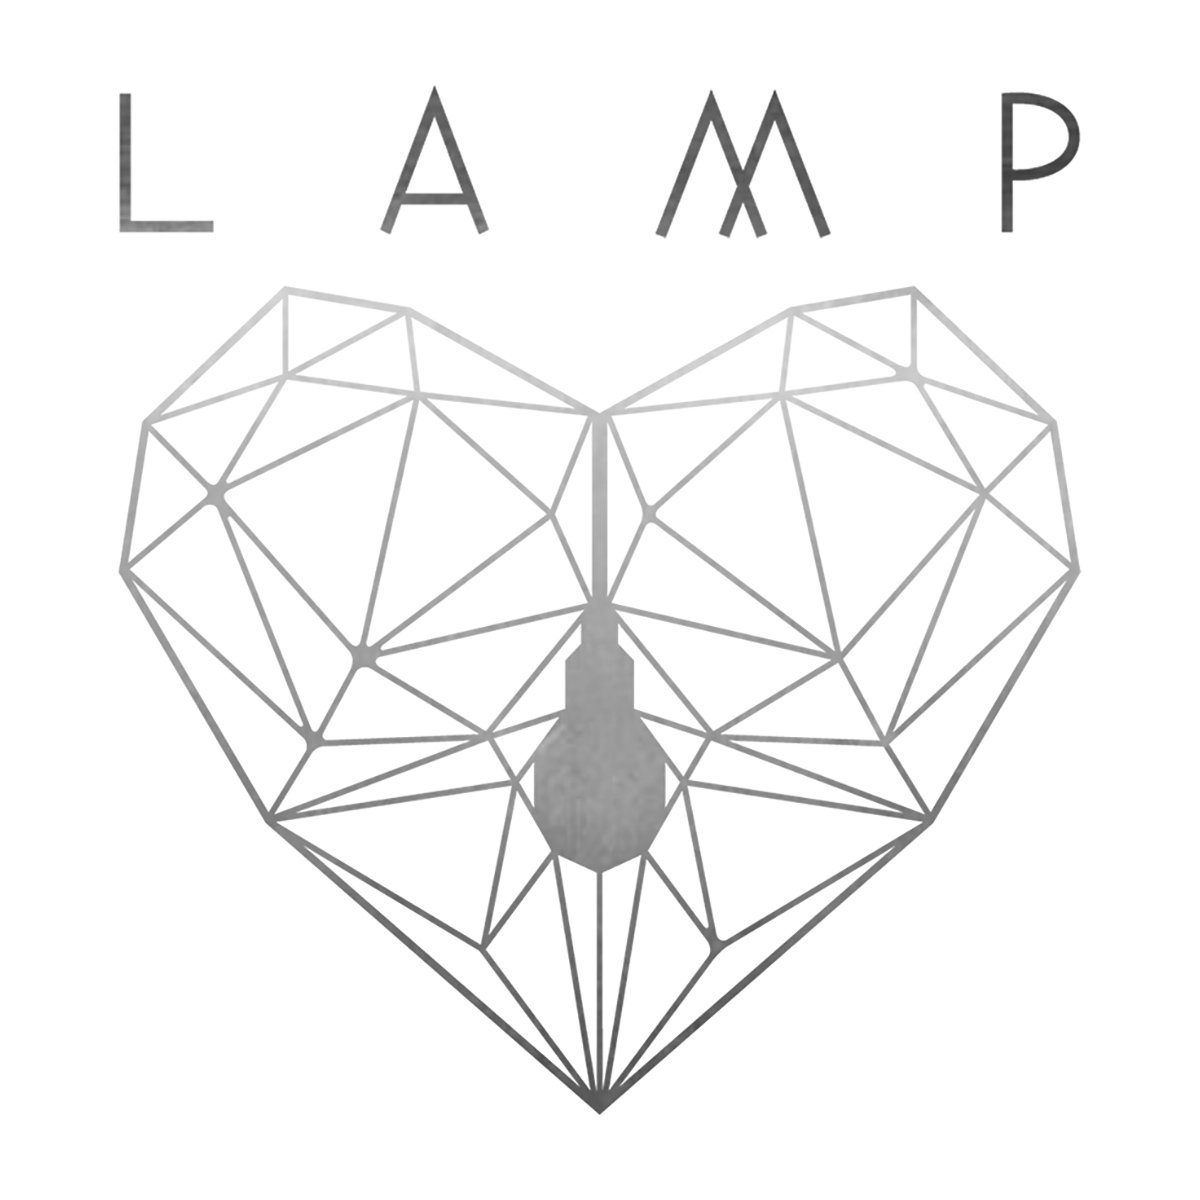 LAMP 2020 Lighting Design Competition - Call for Entries